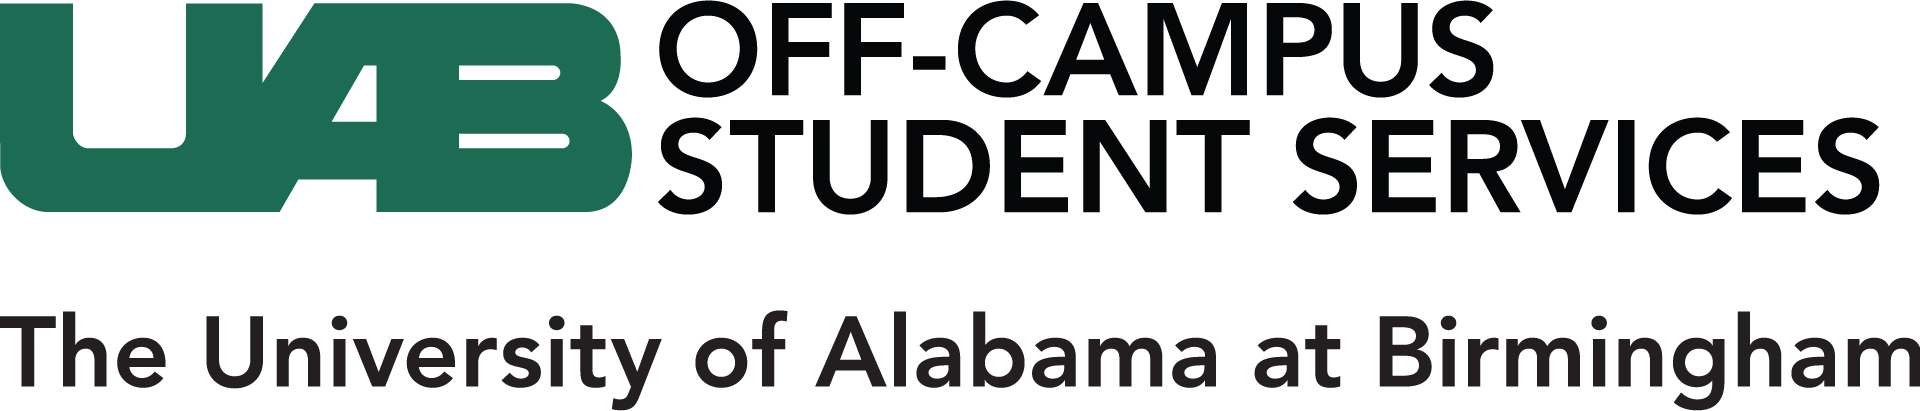 off campus student services logo